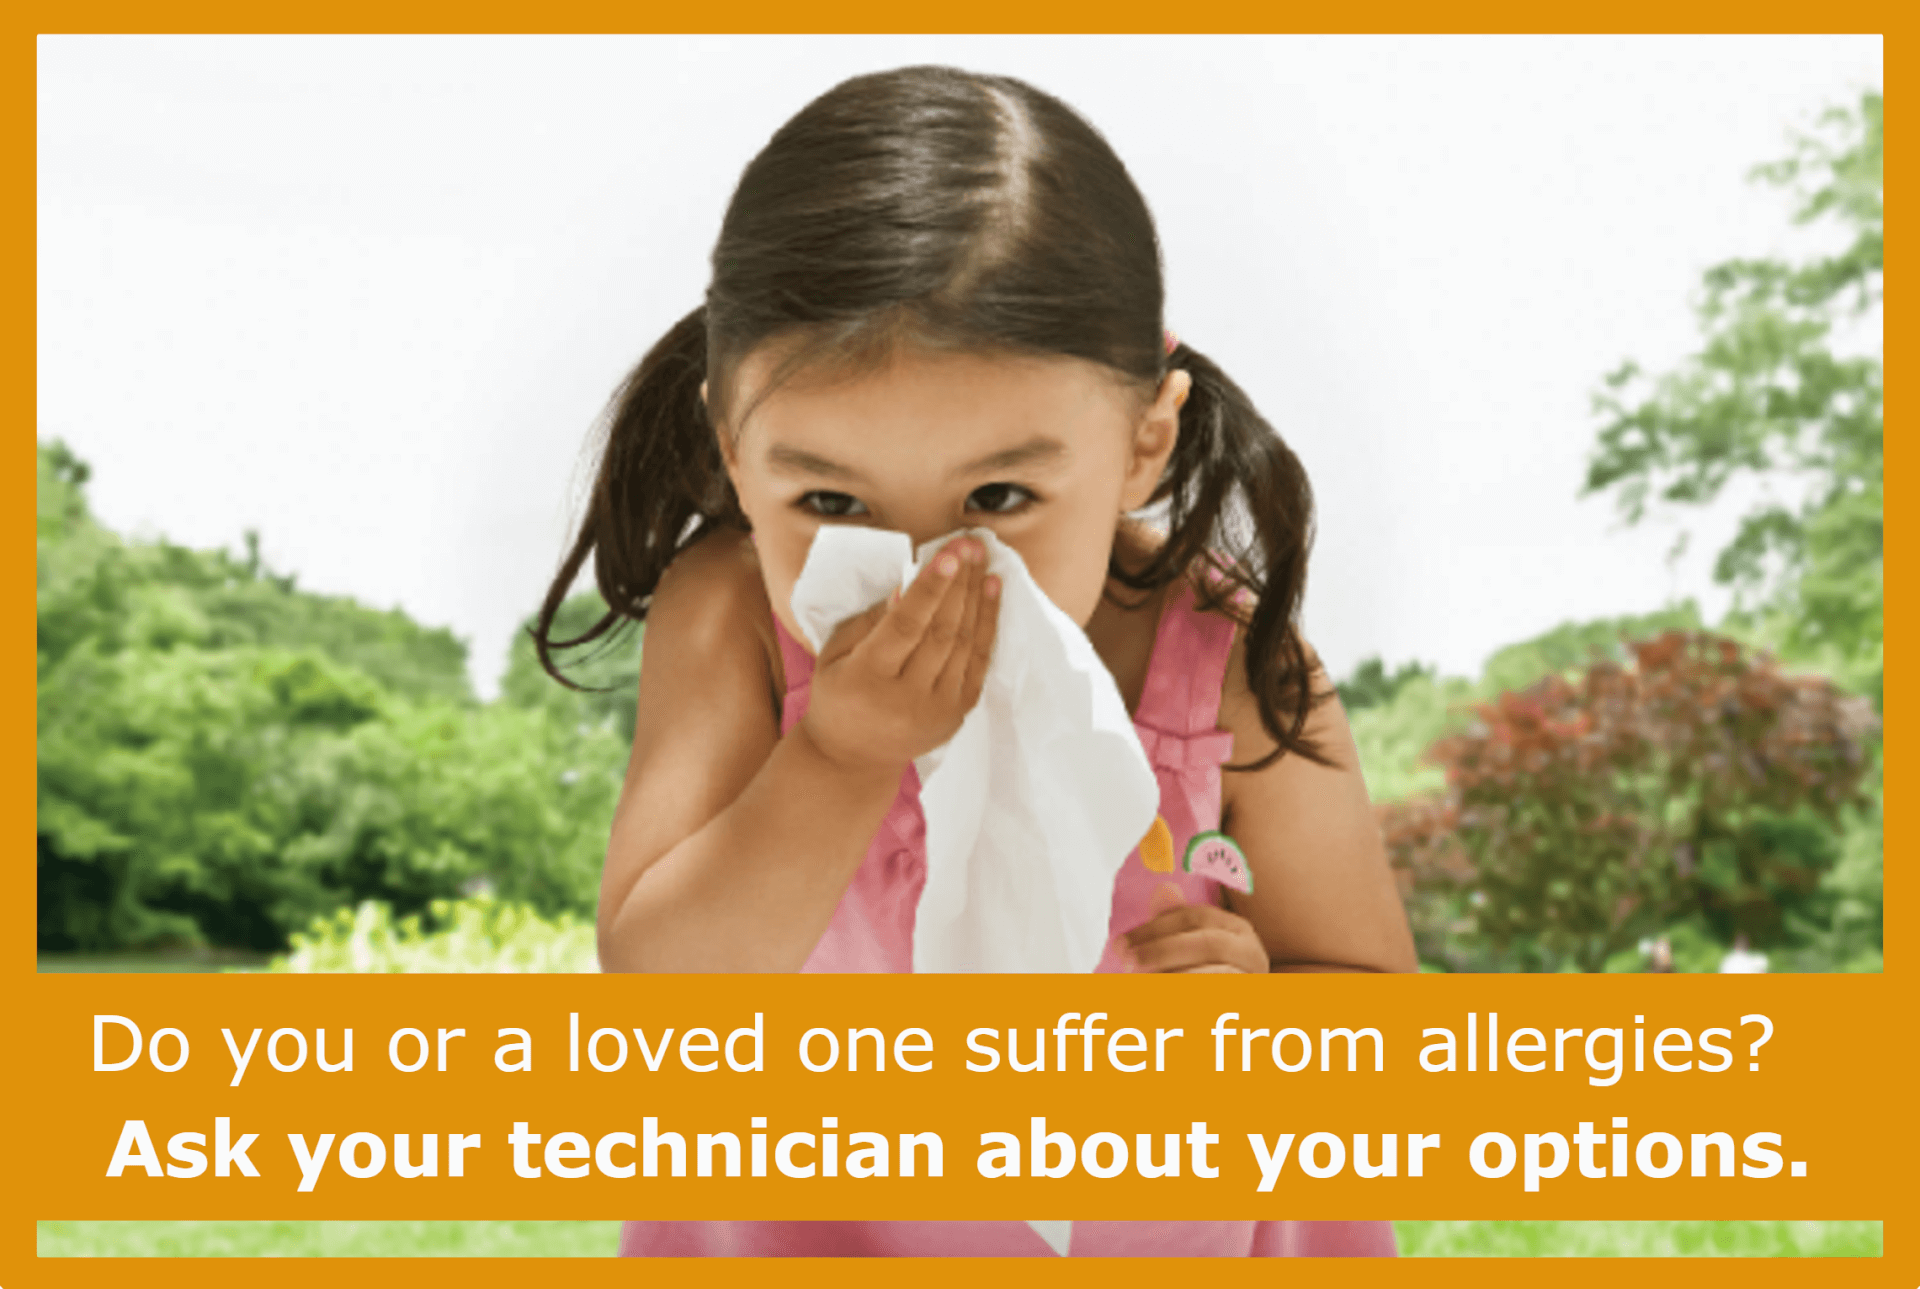 Allergies-Ask-Tech-About-Options